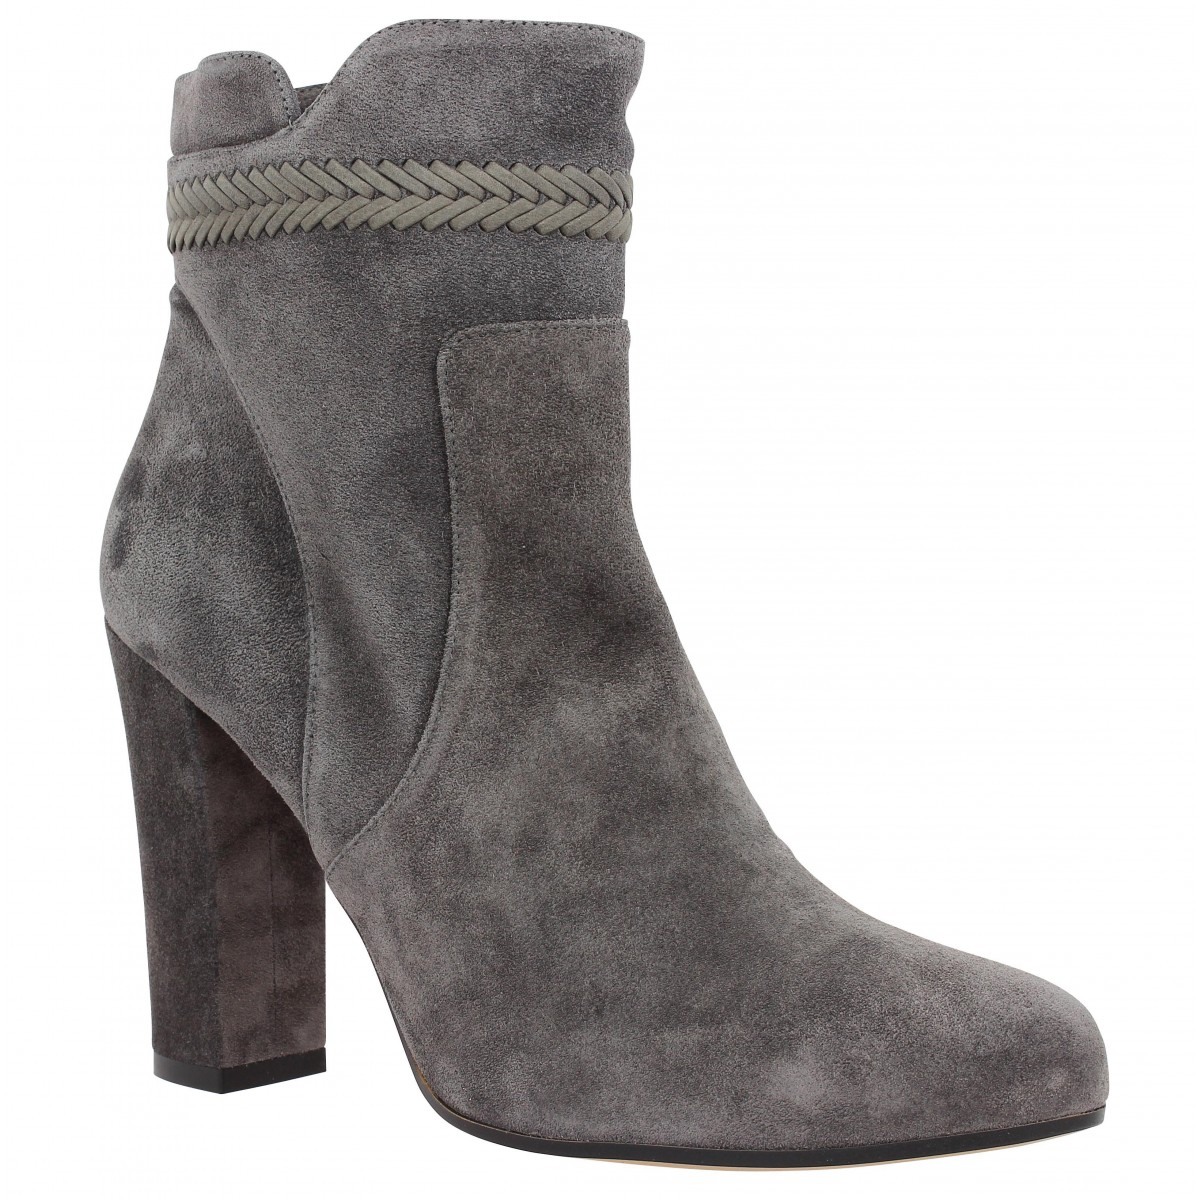 Bottines PURA LOPEZ 297 velours Femme Anthracite